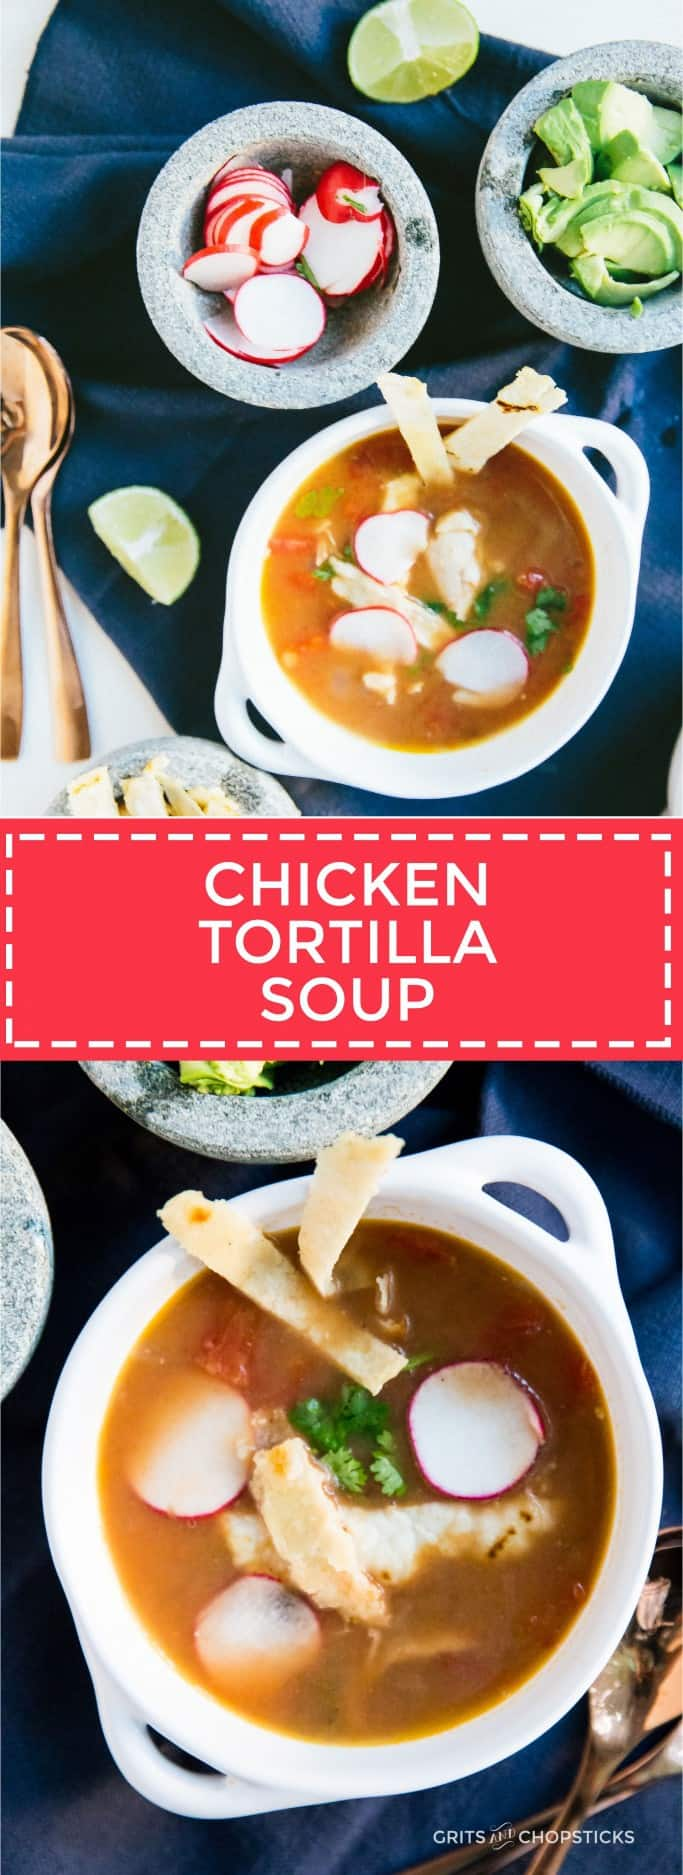 This chicken tortilla soup is easy to make on a weeknight and perfect for cooler fall nights